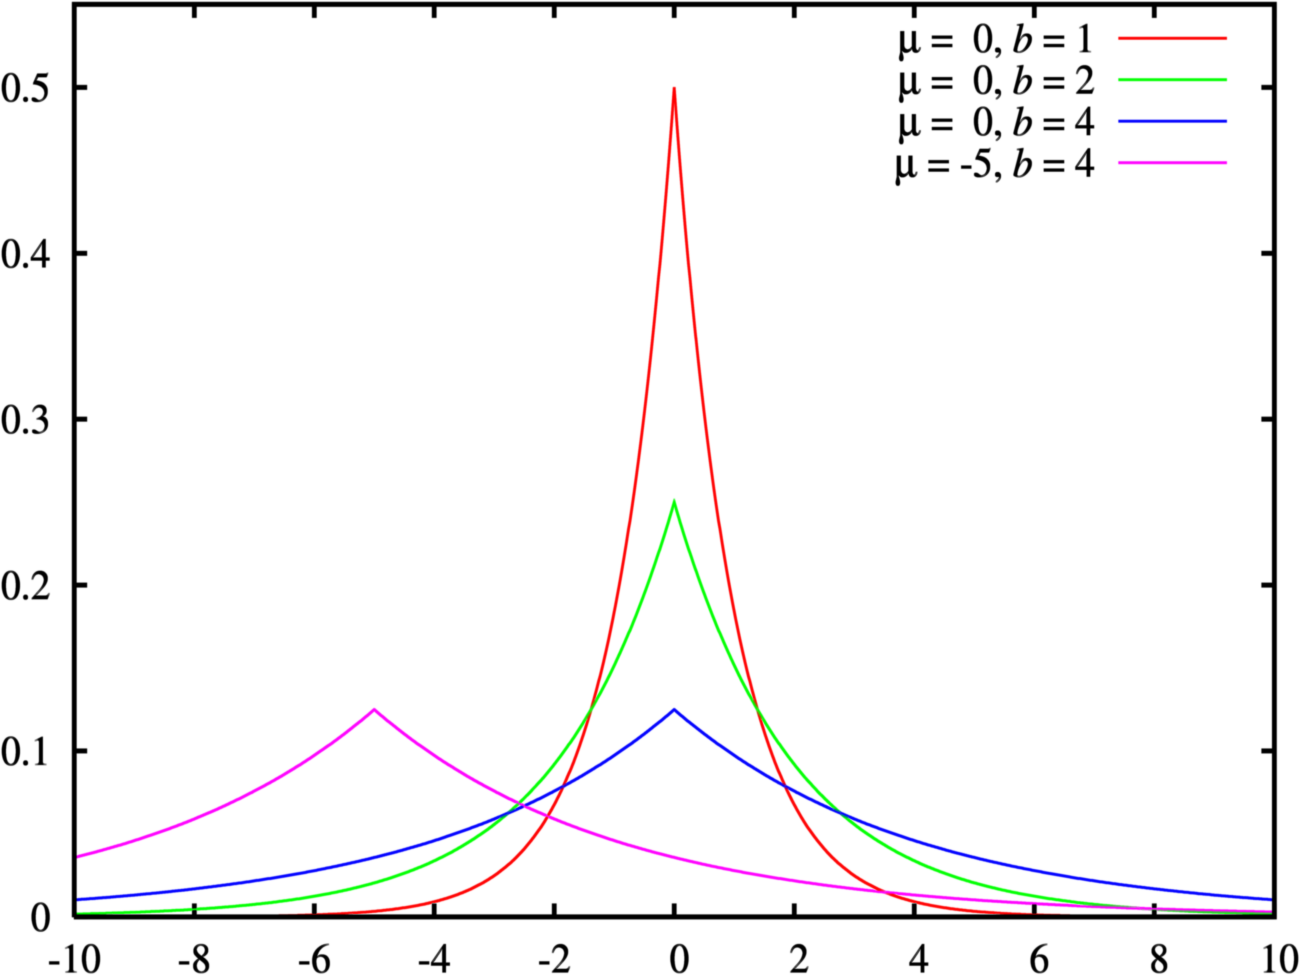 File:Laplace distribution pdf.png - Wikipedia, the free encyclopedia